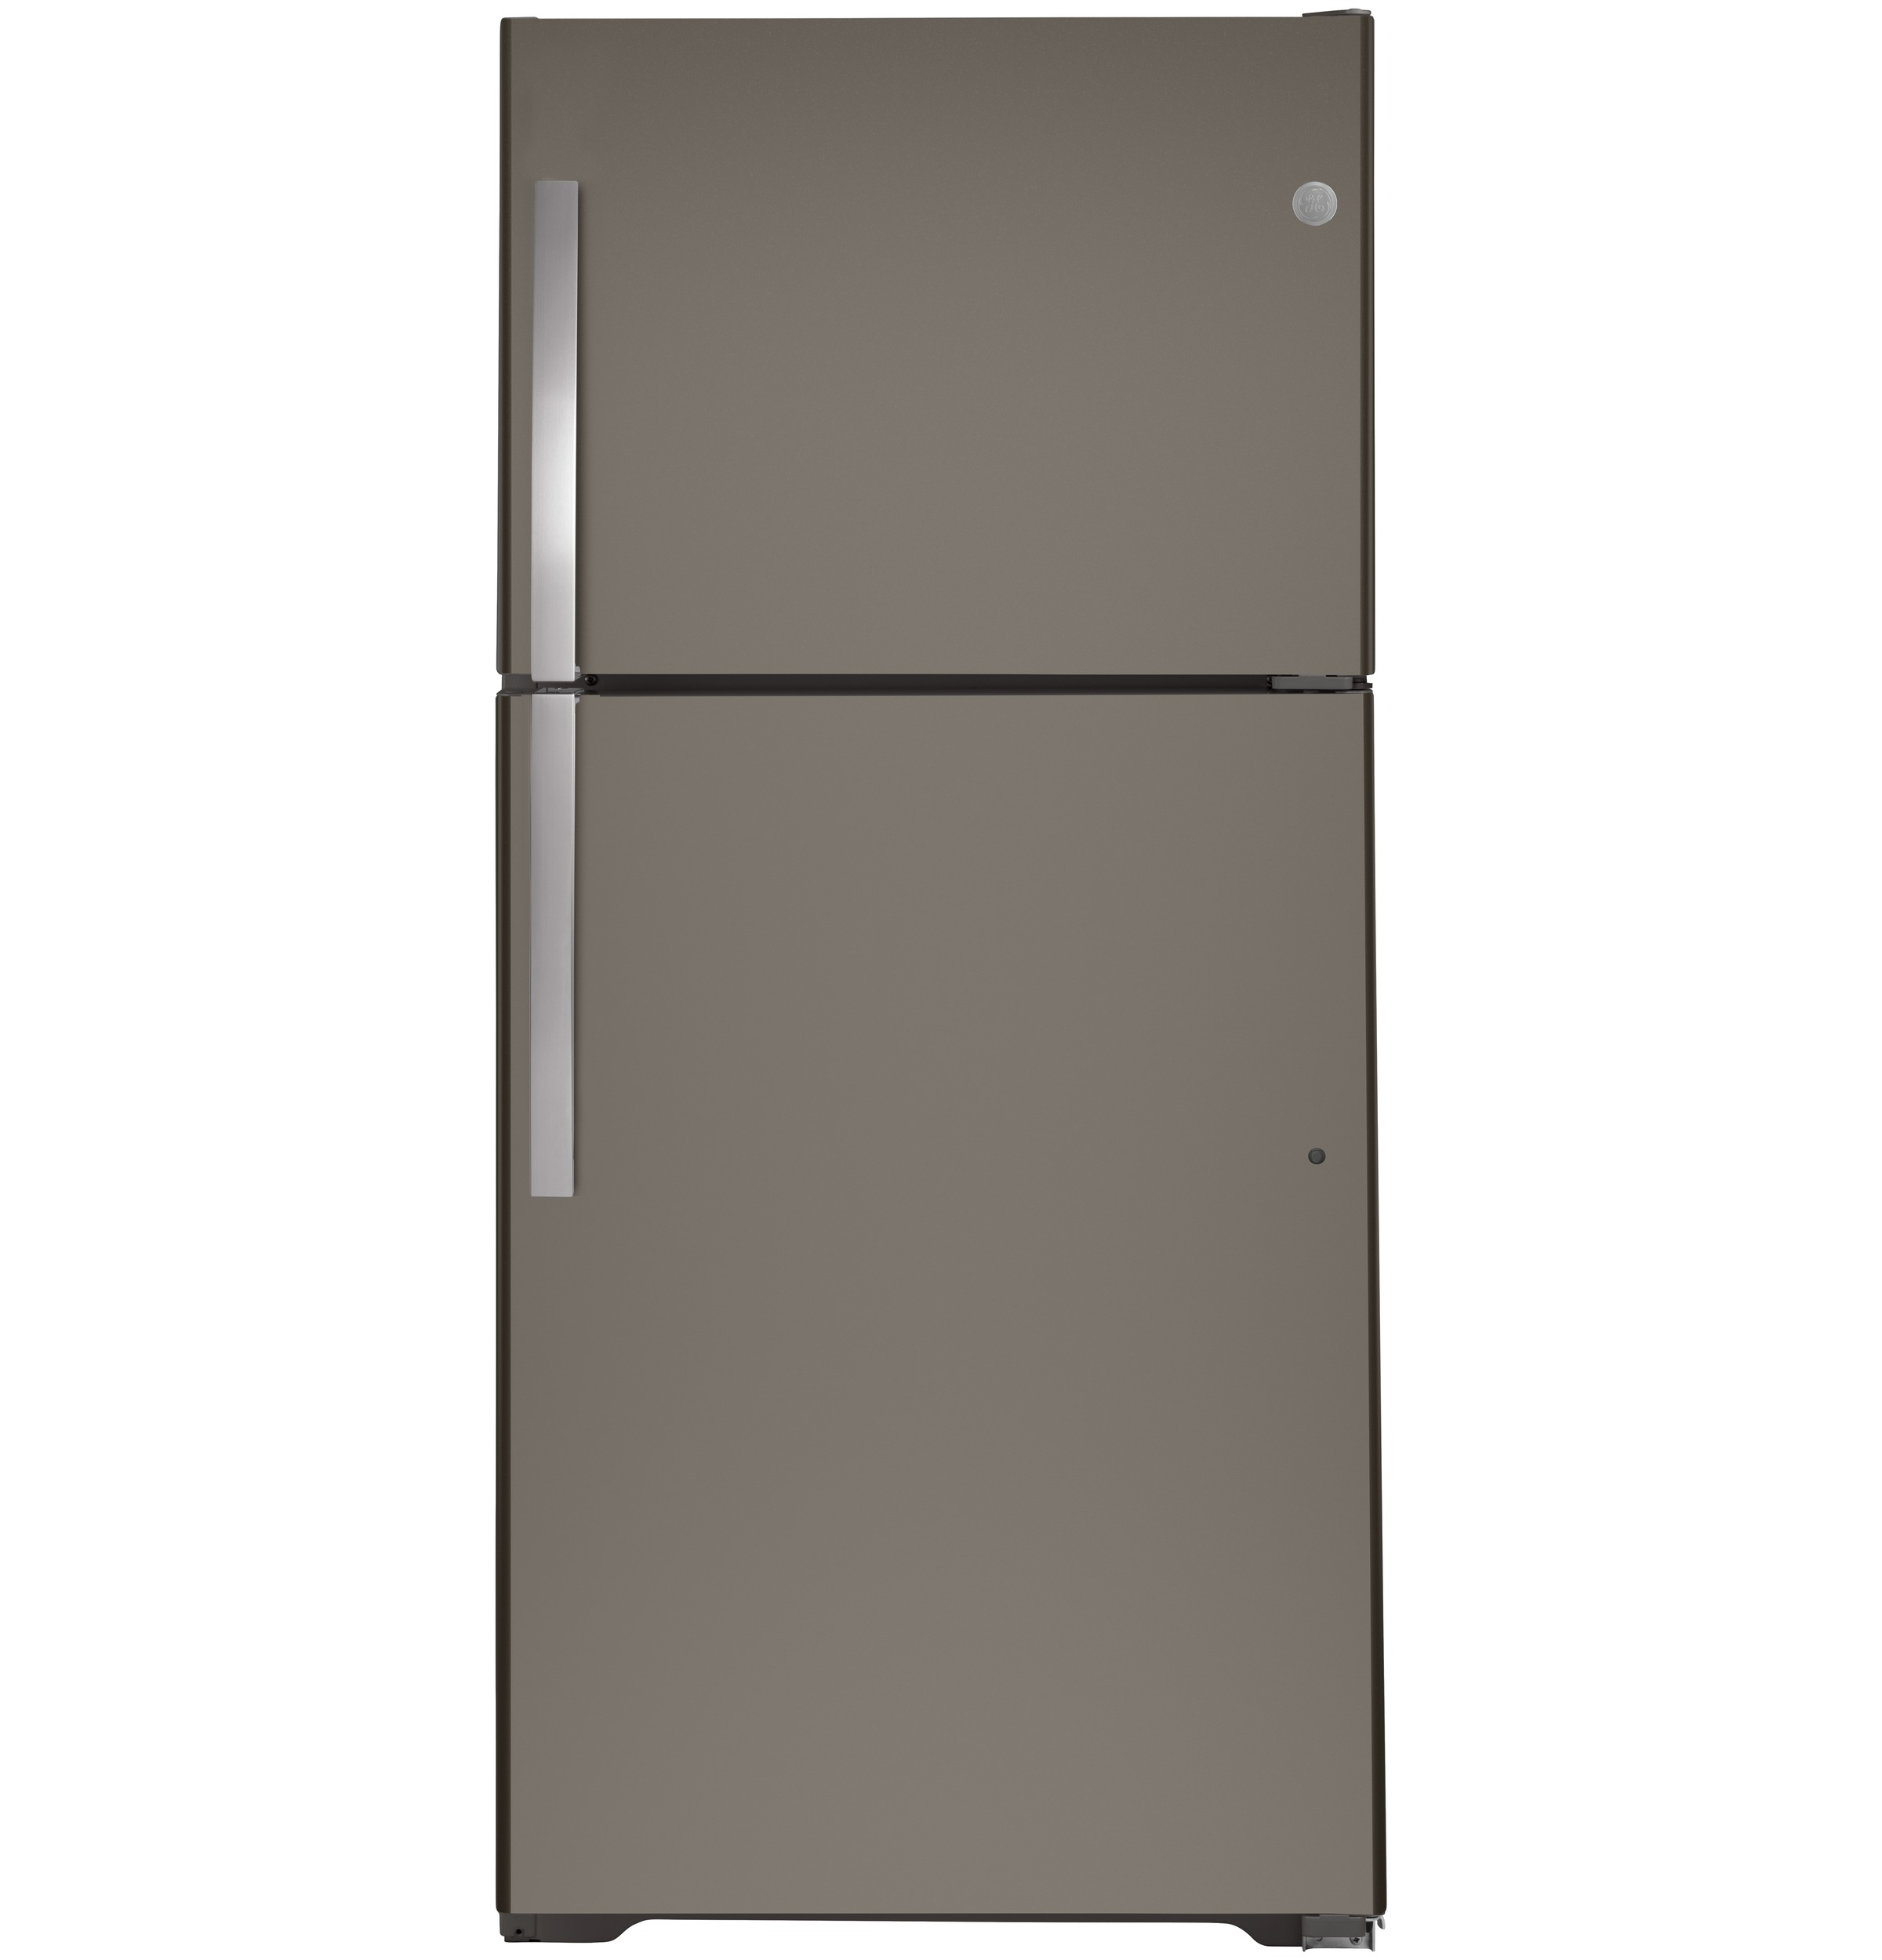 GE GE® 21.9 Cu. Ft. Top-Freezer Refrigerator